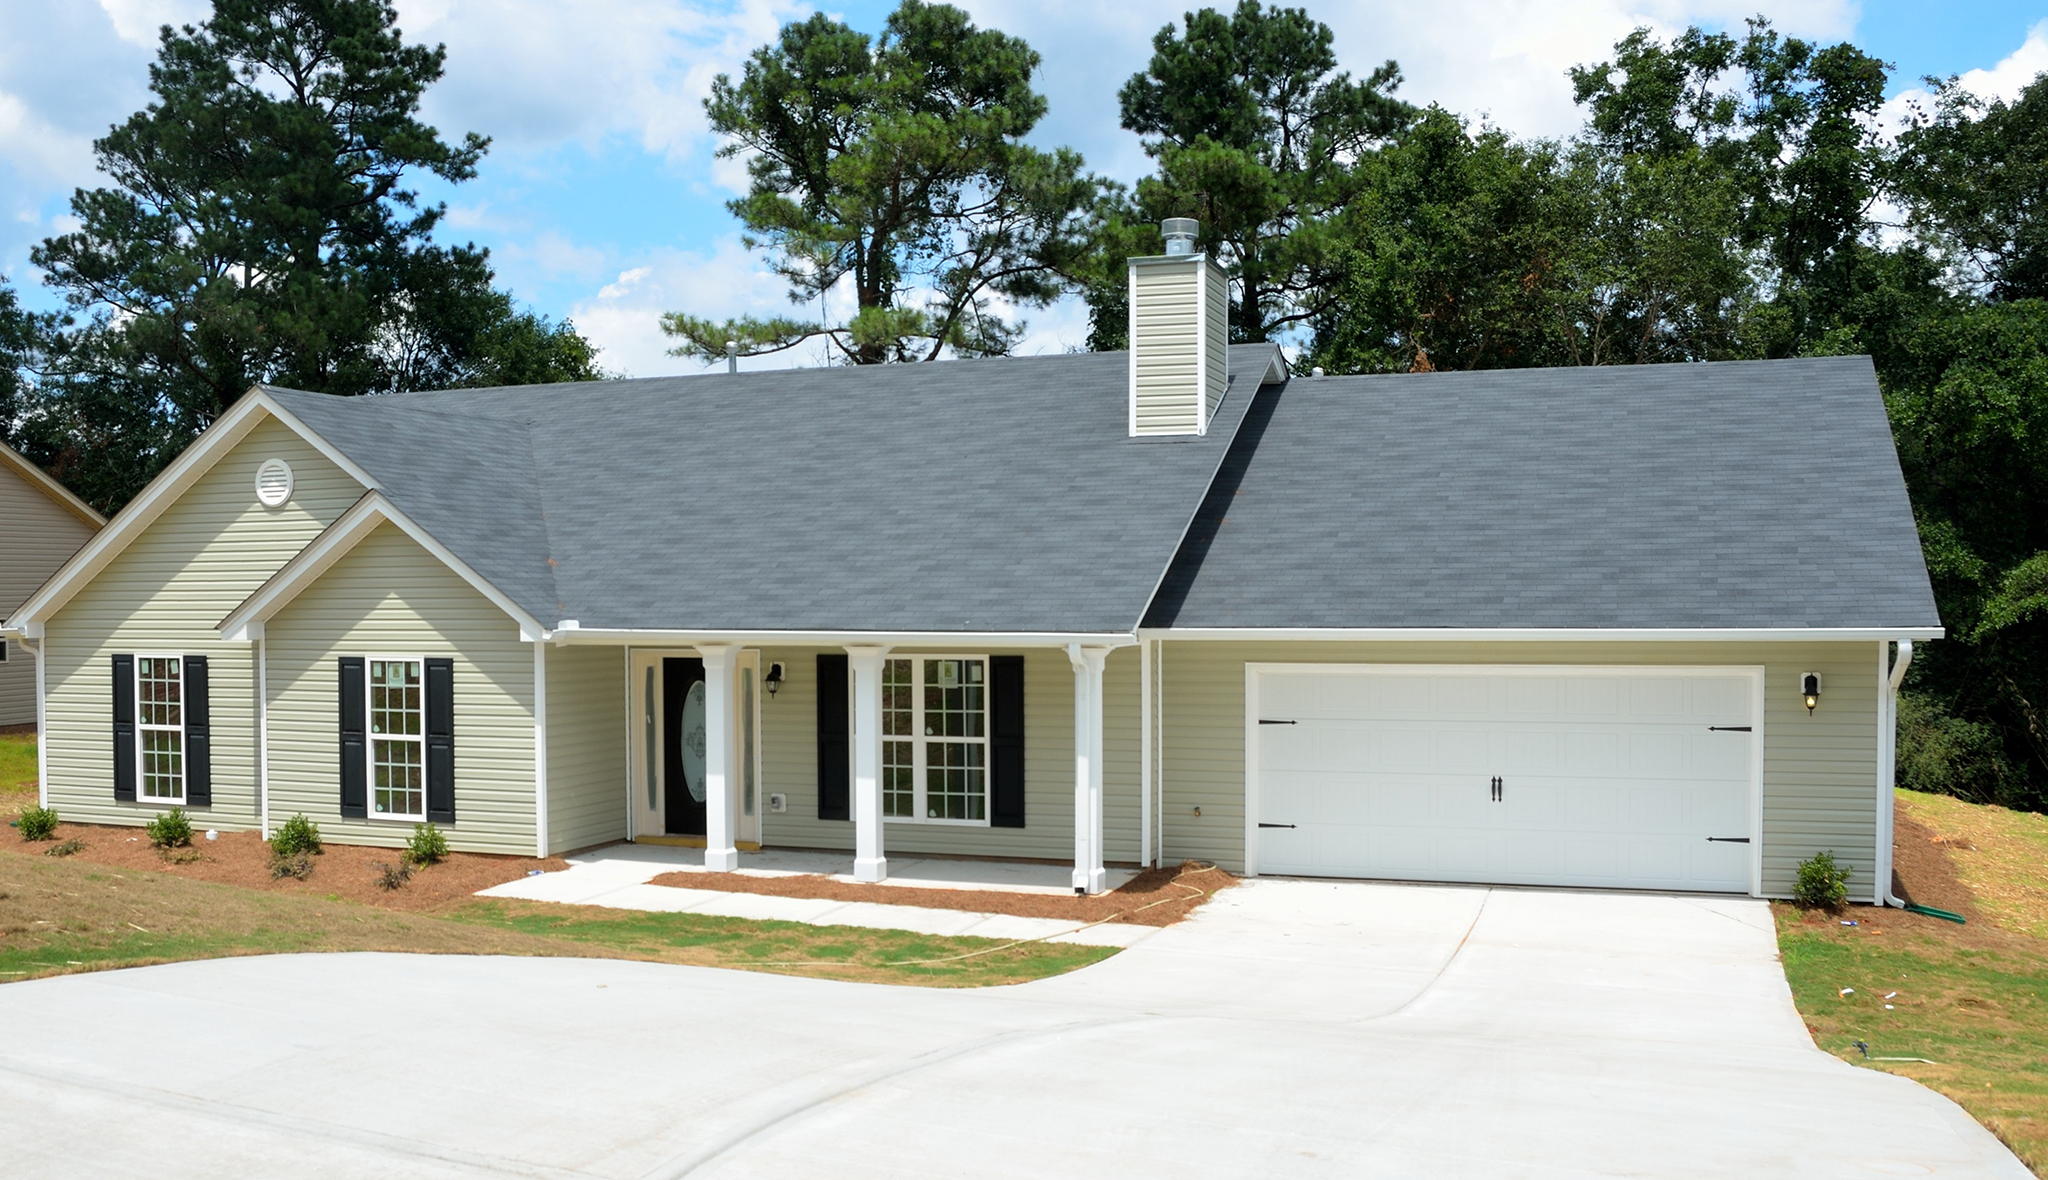 Tips on What to Look for in a Roof When Buying a New Home